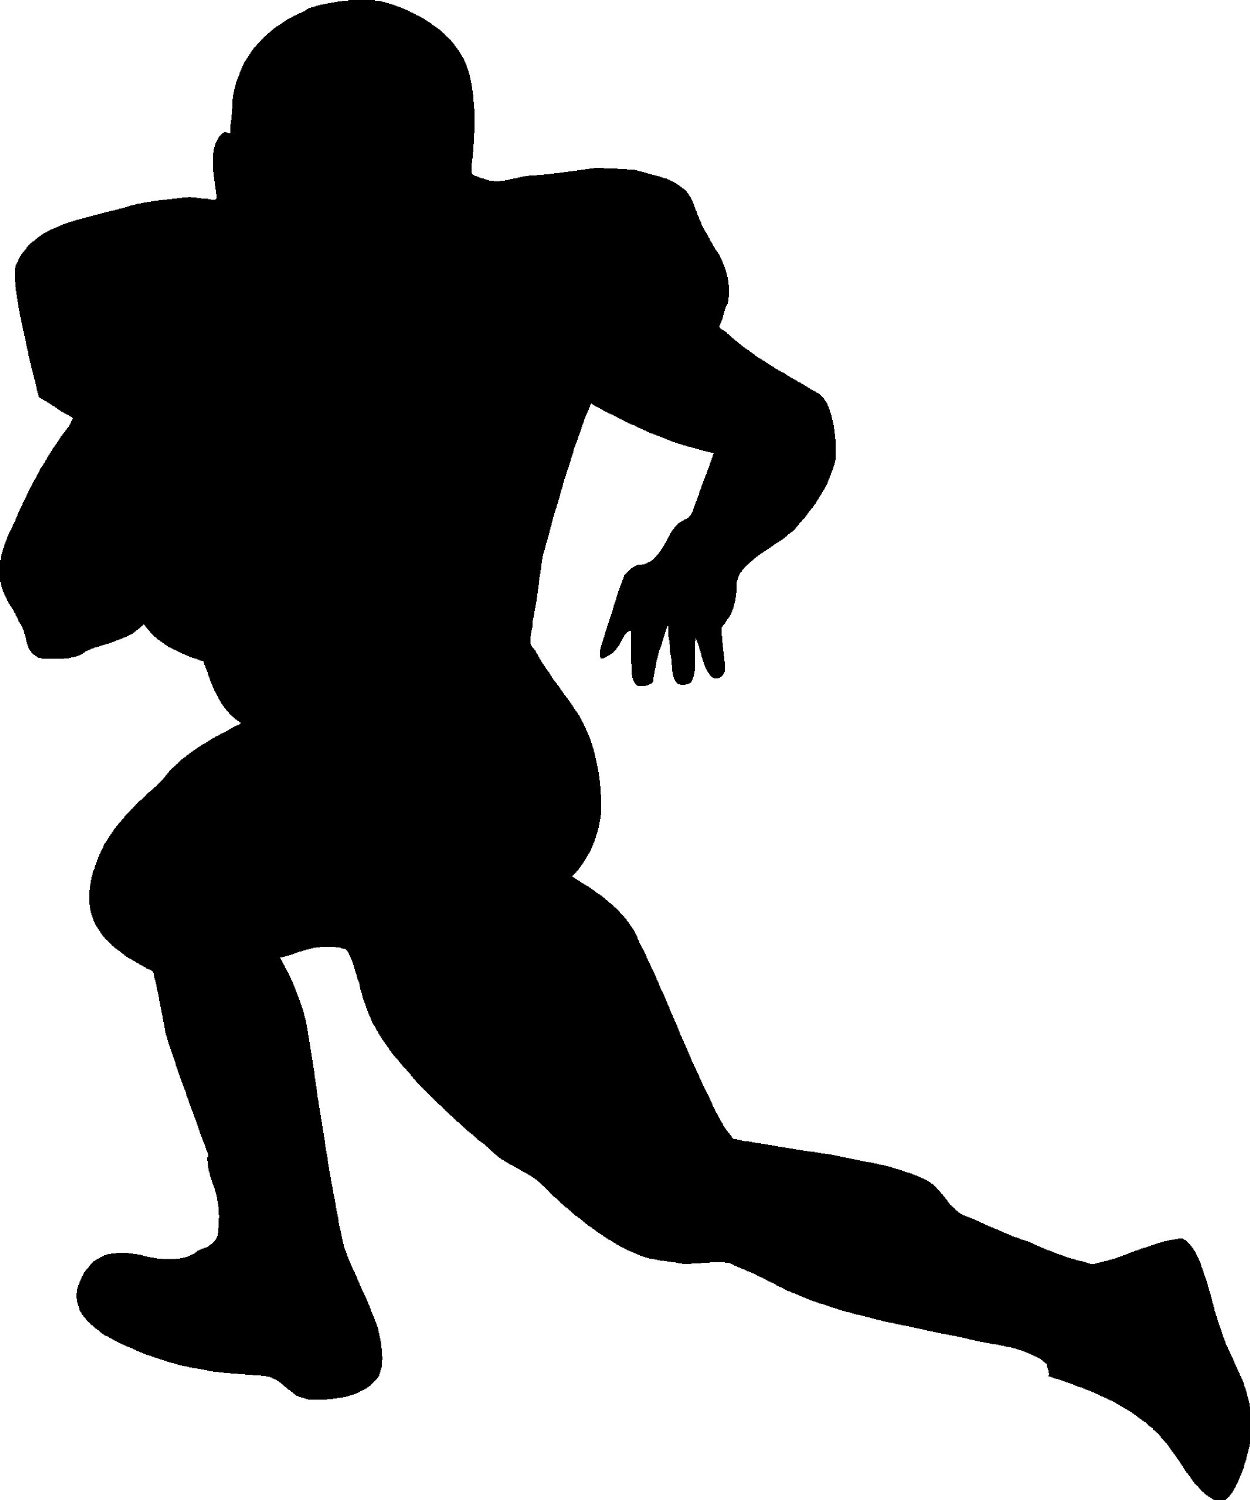 1250x1500 Shaow Clipart Runner Many Interesting Cliparts